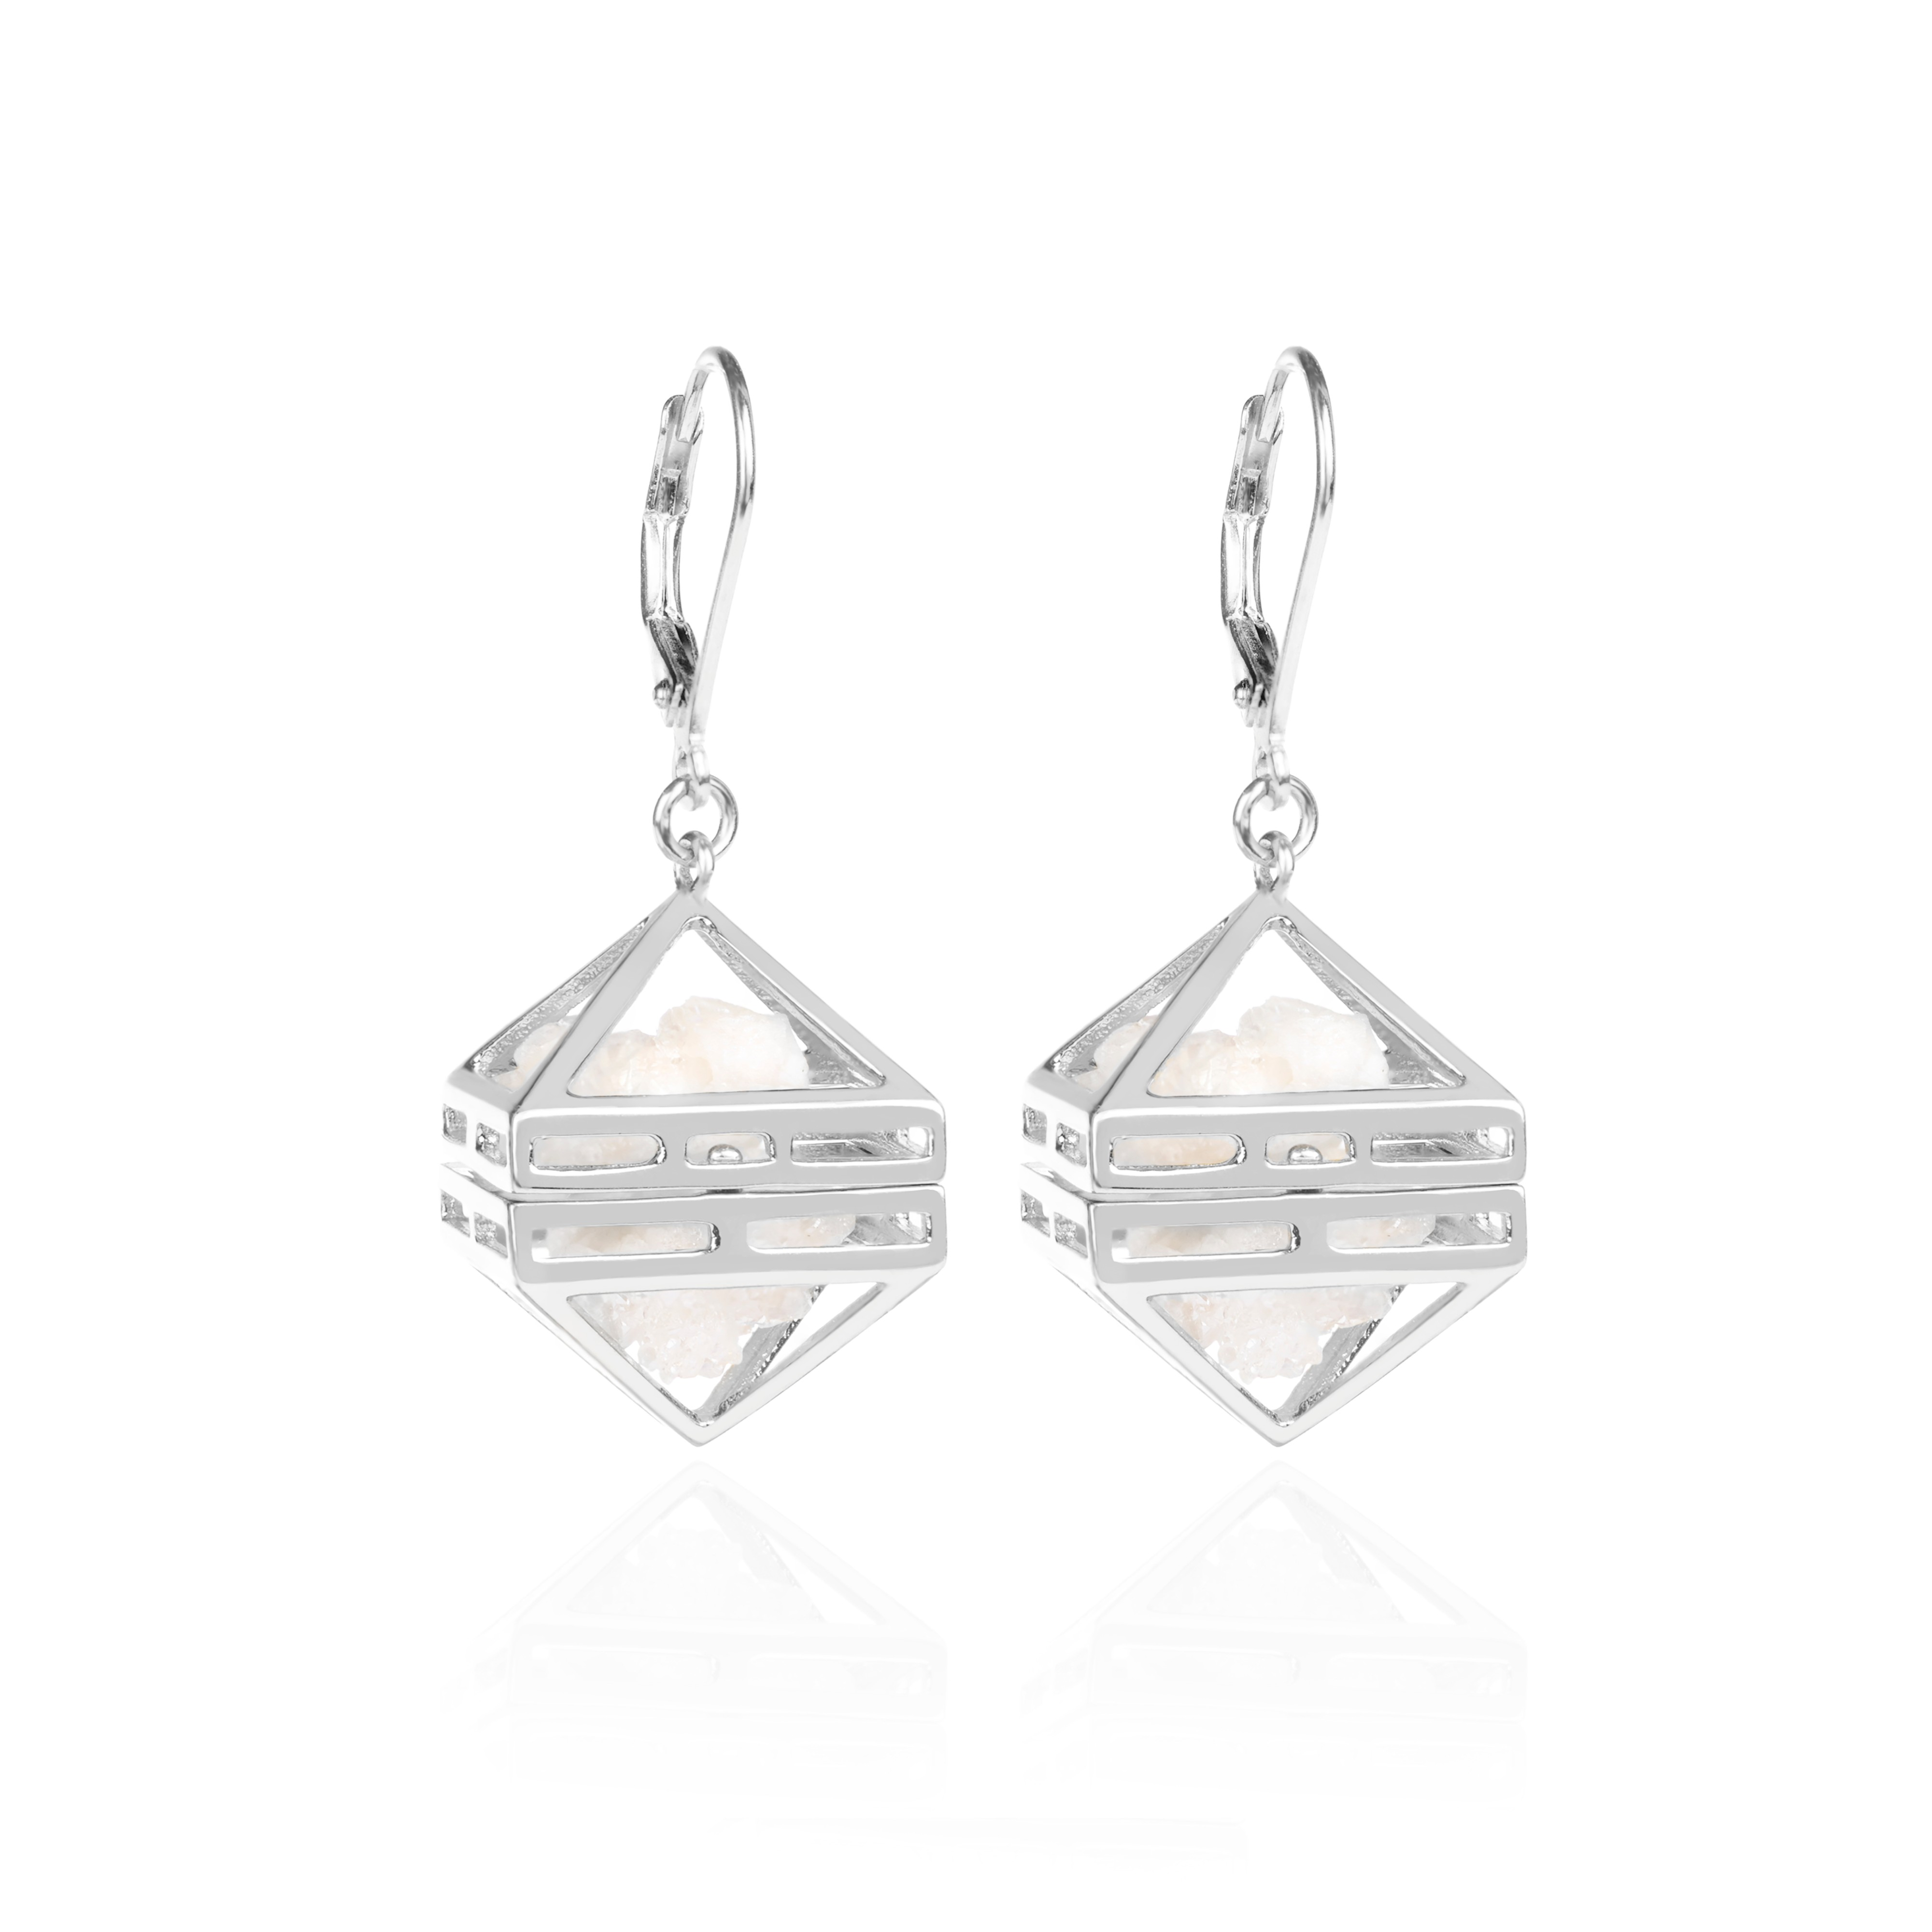 White Beauty Within Earrings, Silver by Sally Lane Jewellery on curated-crowd.com